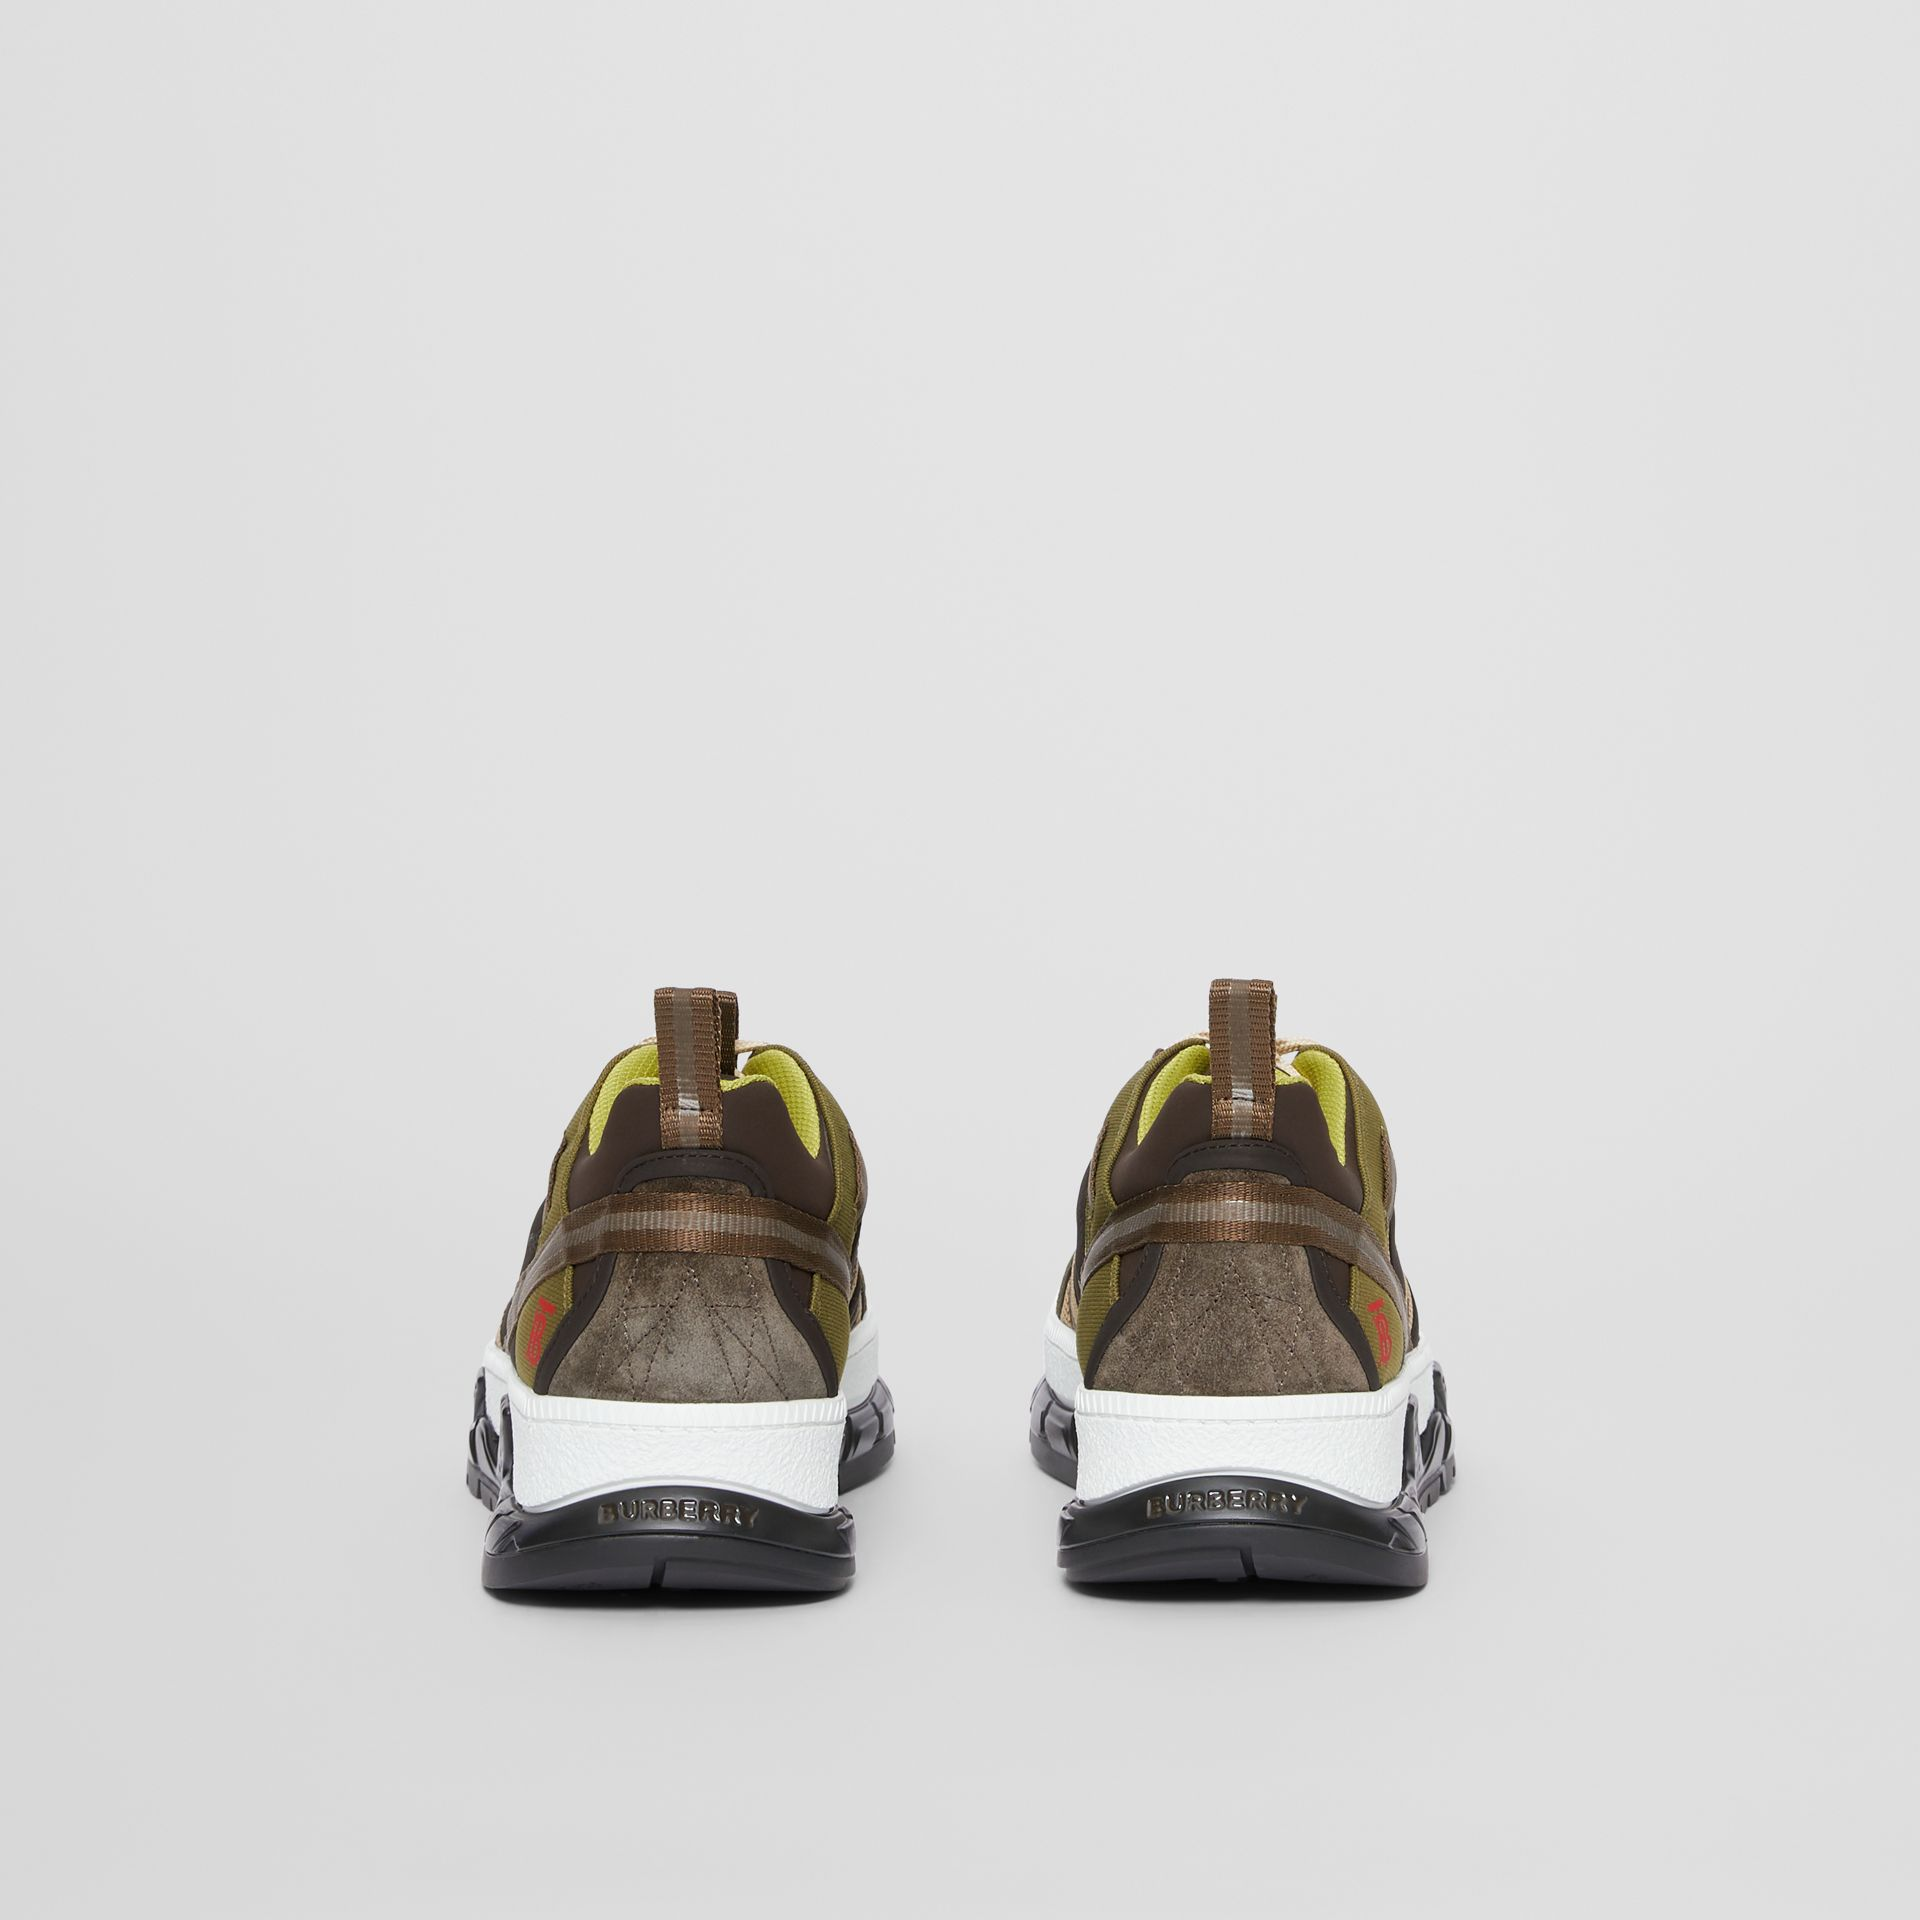 Mesh and Suede Union Sneakers in Khaki / Brown - Men | Burberry Australia - gallery image 3